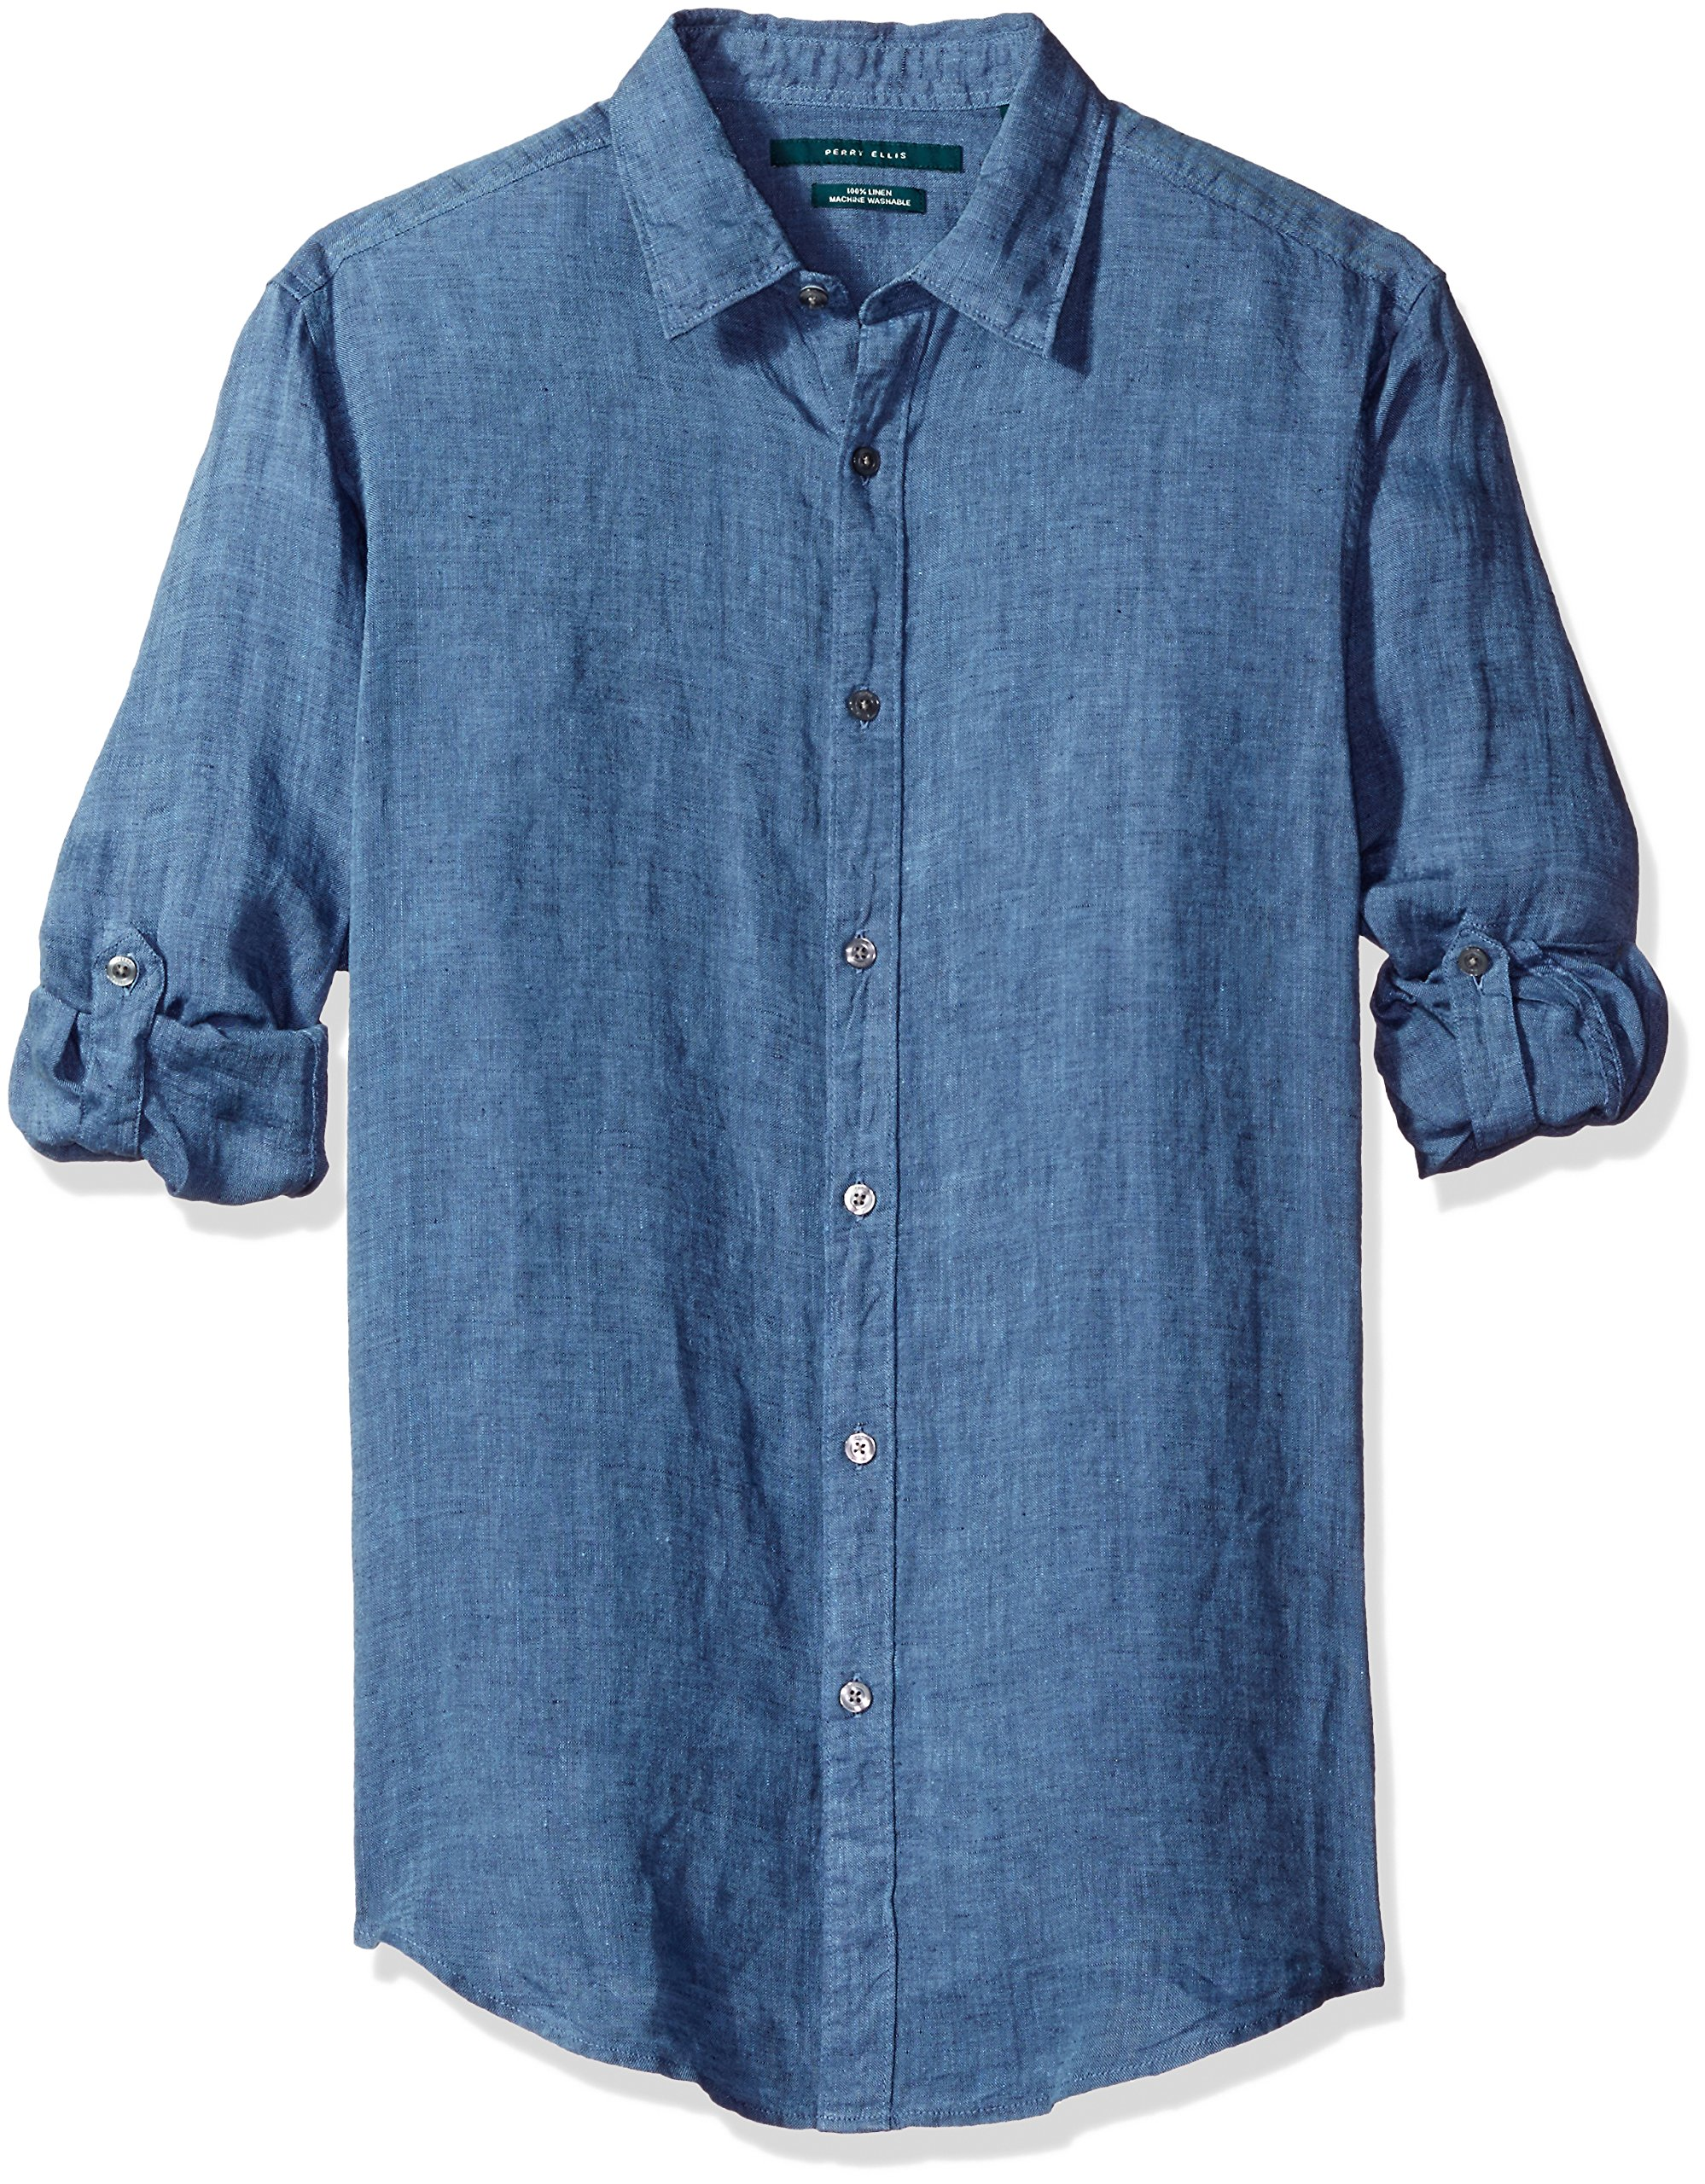 Perry Ellis Men's Rolled Sleeve Solid Linen Shirt, Delft-4BHW3028, Small by Perry Ellis